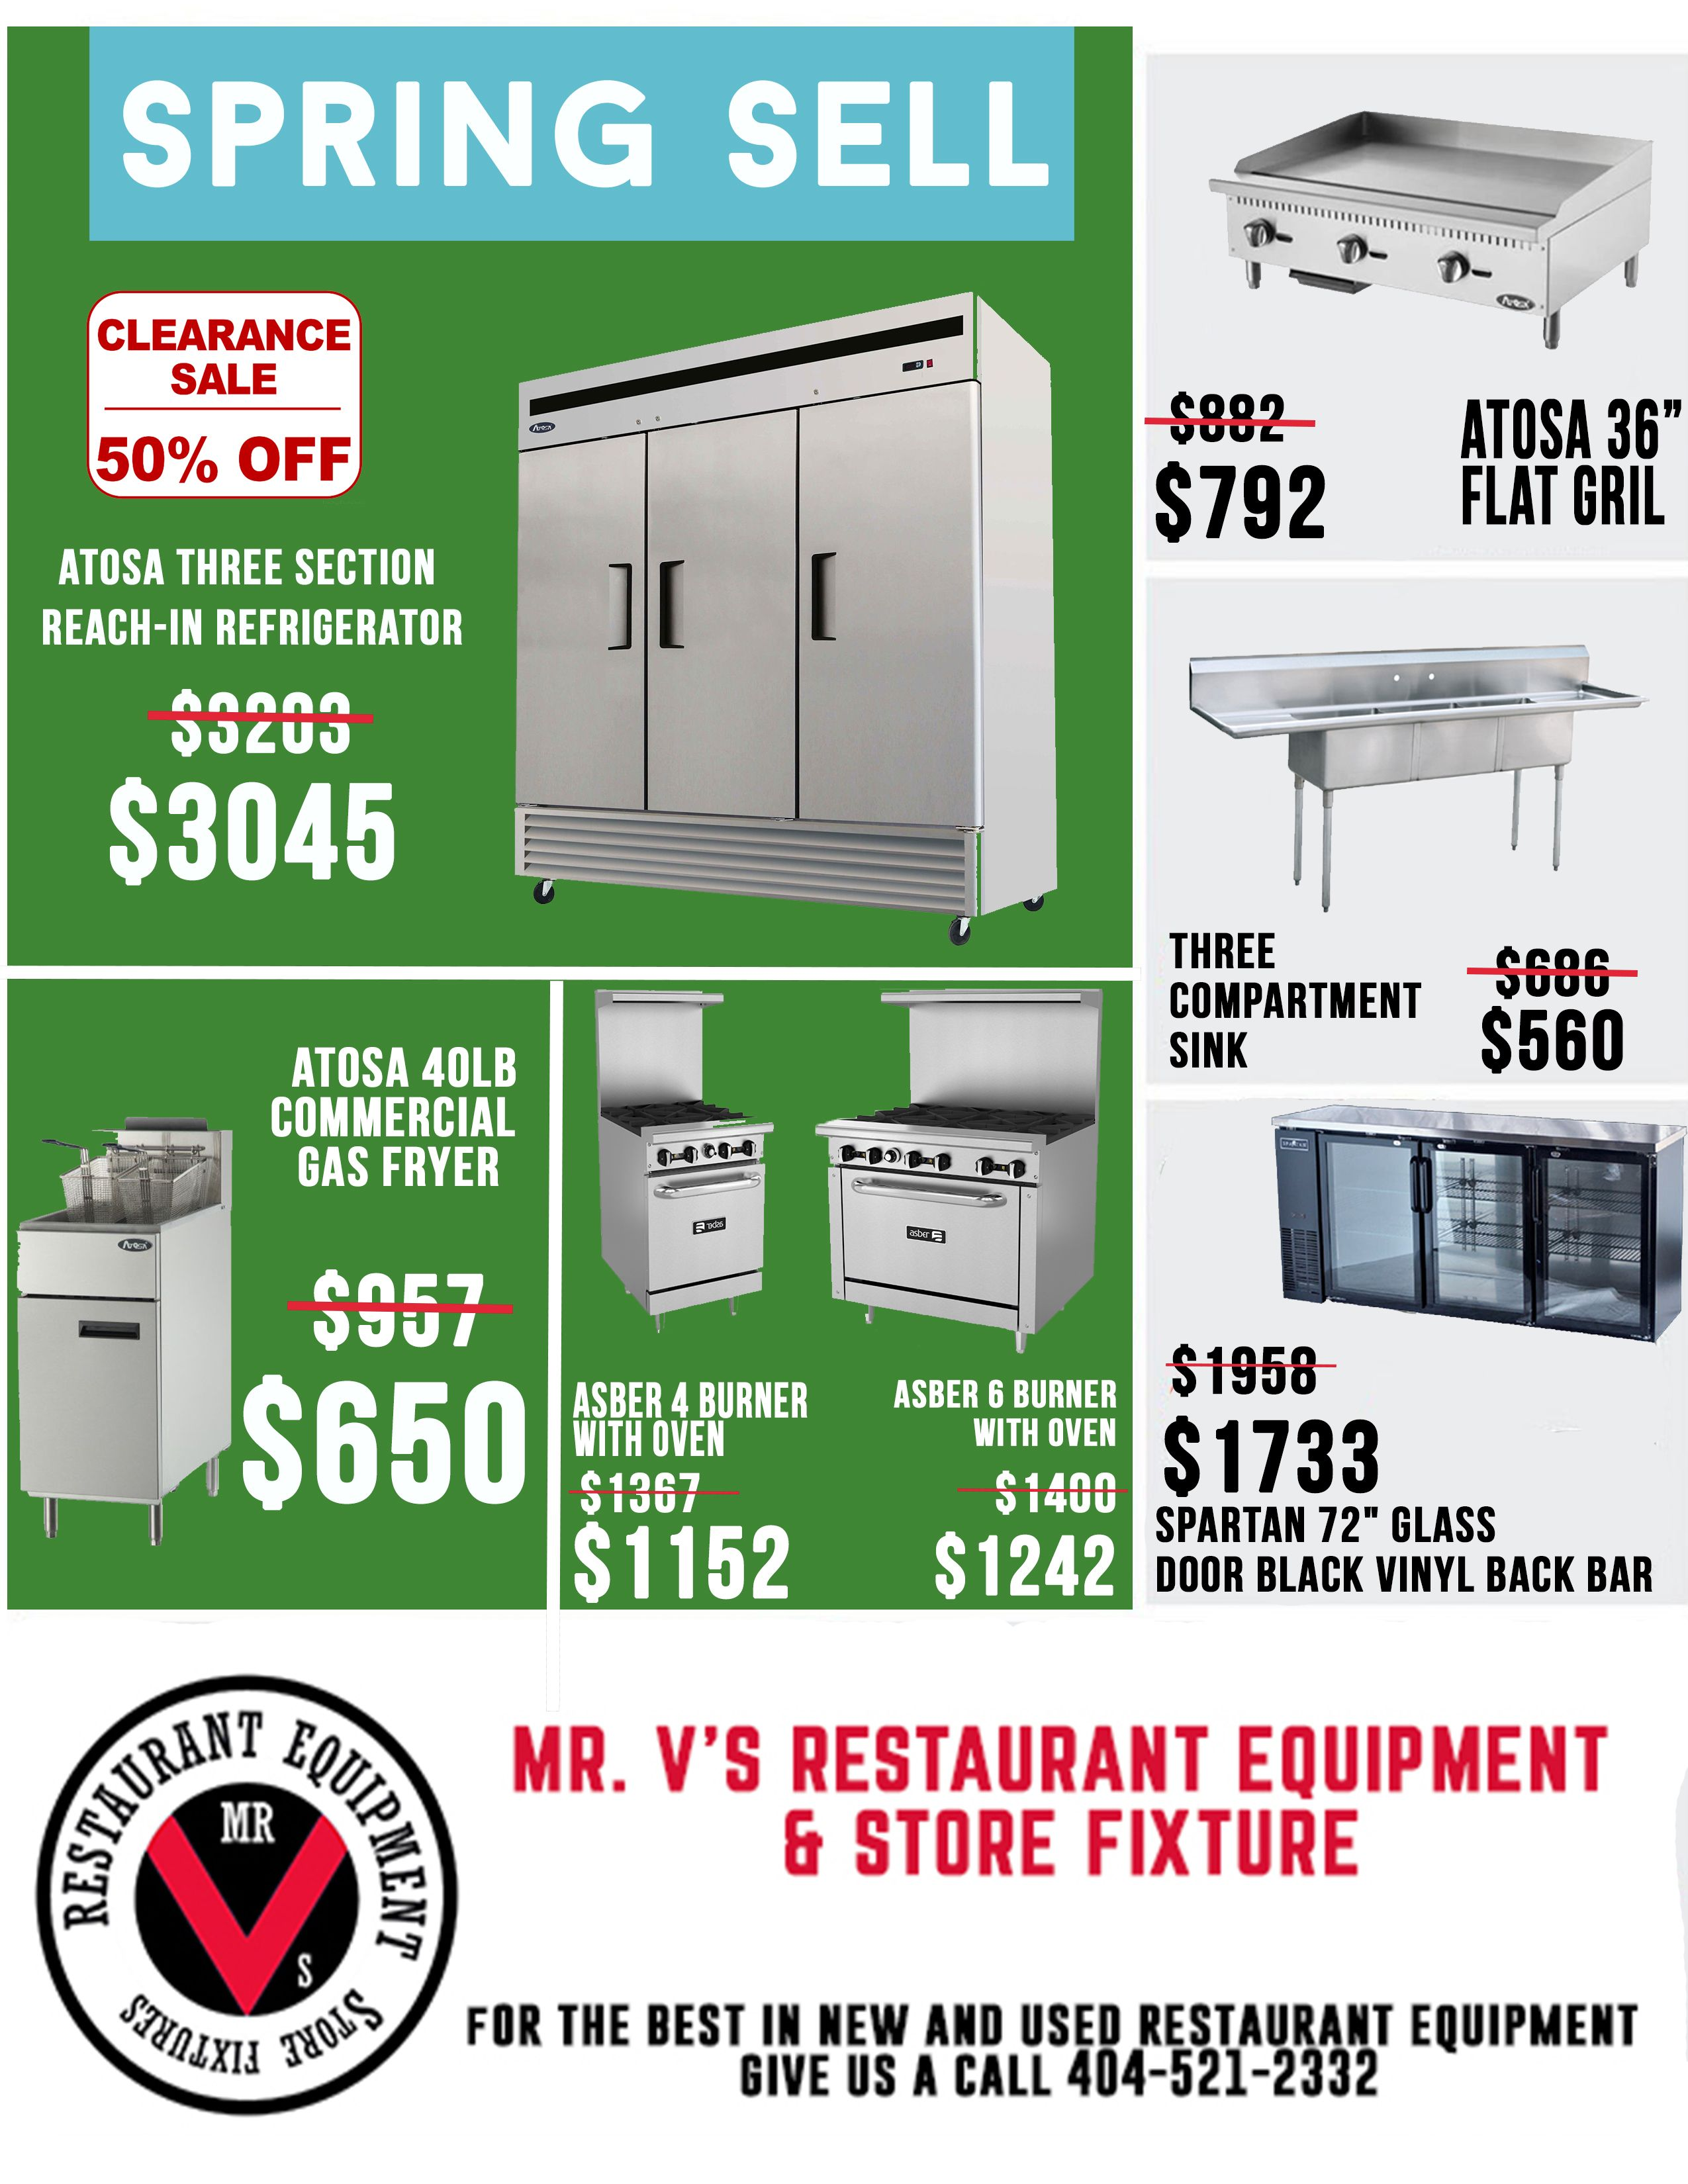 Spring Sell On New Items Call Us Or Come Down To Mr V S Restaurant Equipment Restaurant Equipment Used Restaurant Equipment Locker Storage